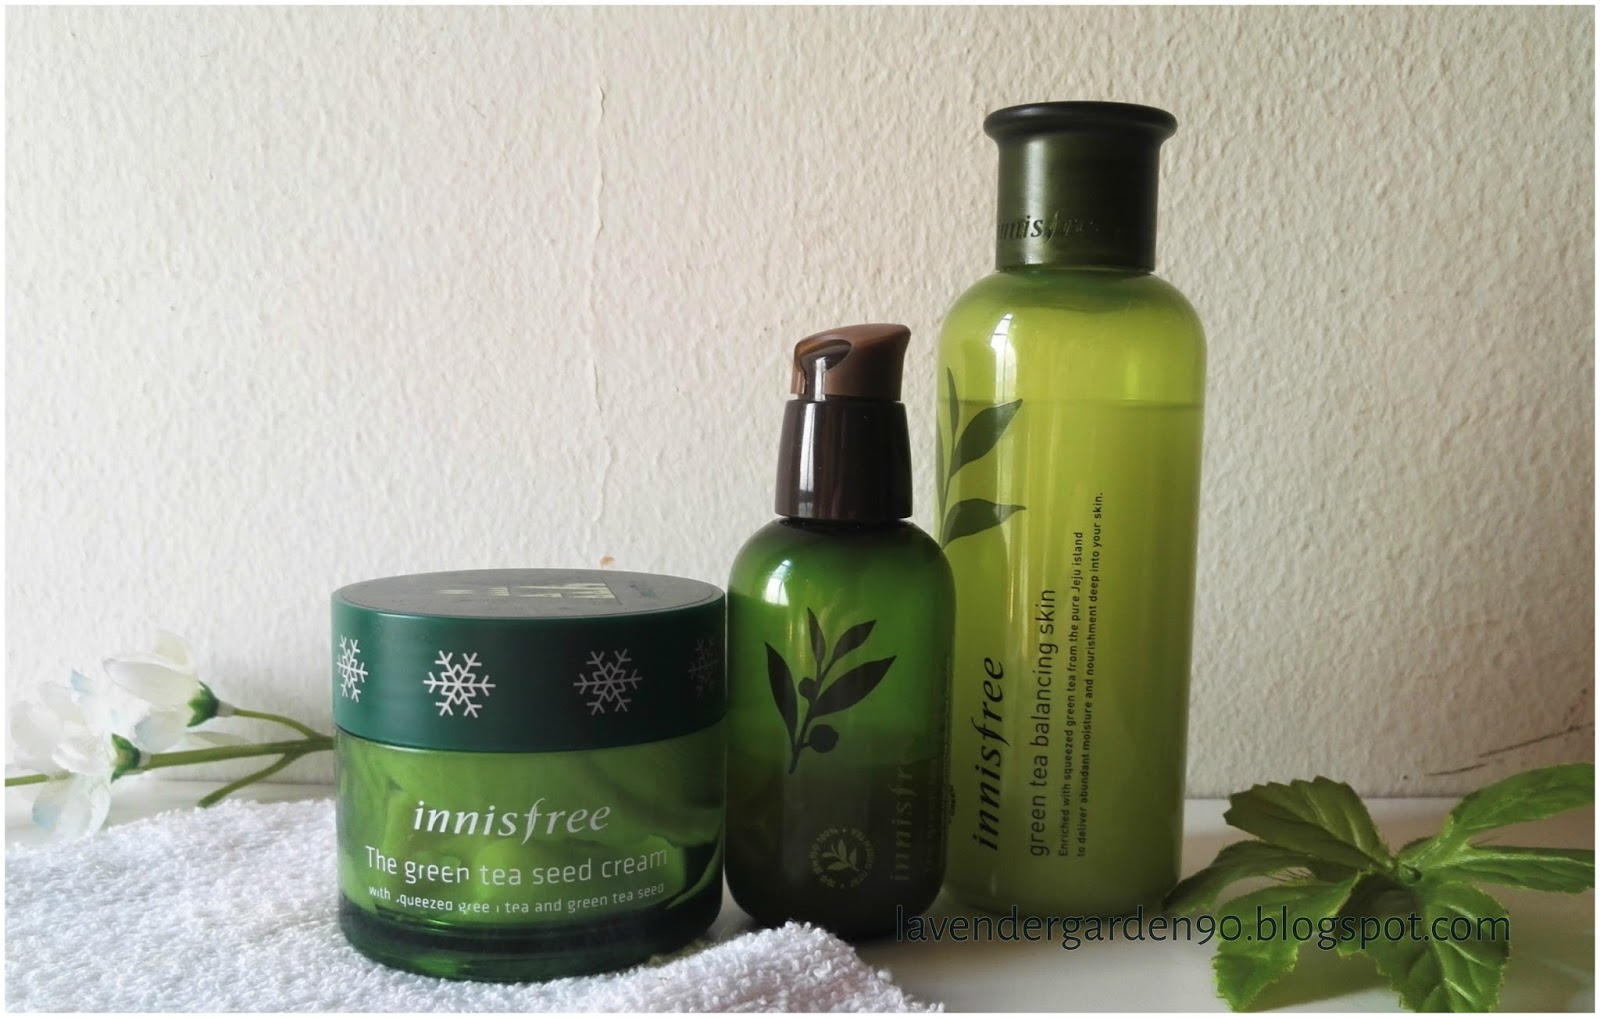 a4bf30b44d2 Carolyn s Lavender Garden  Review  Innisfree The Green Tea Seed ...